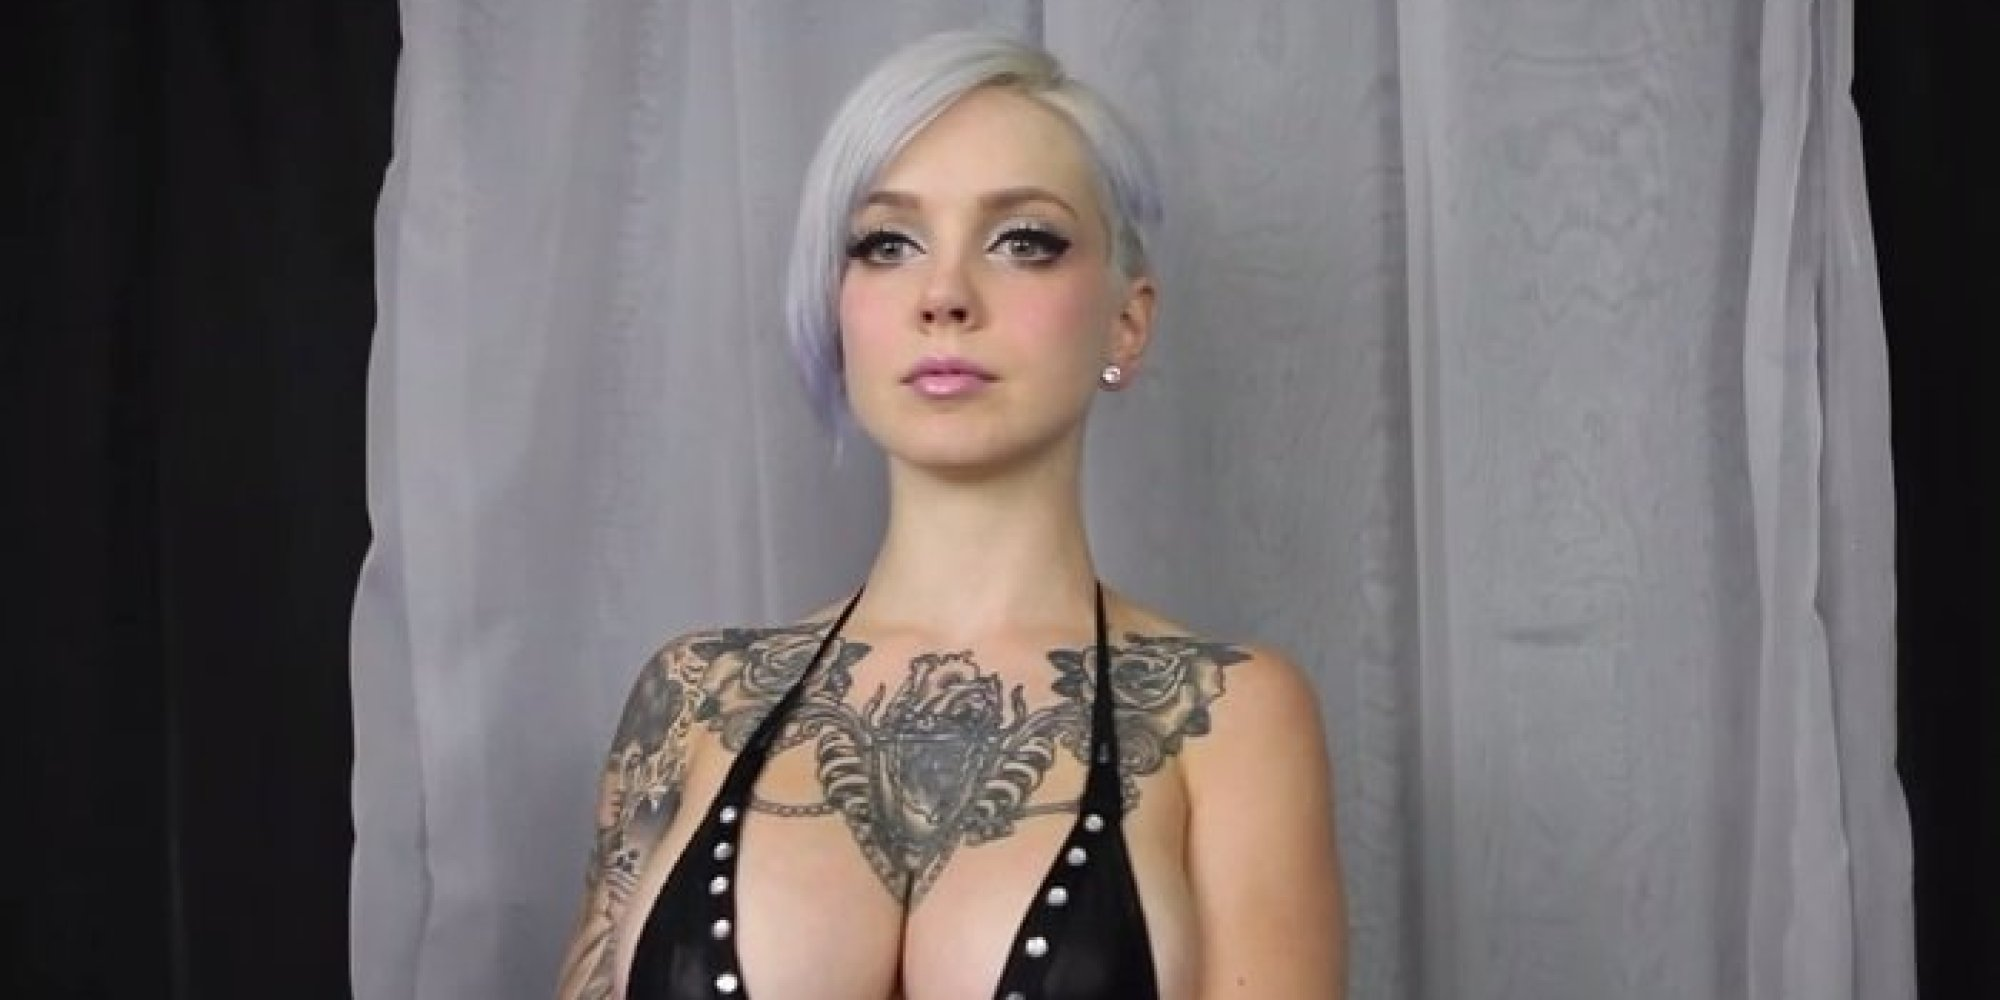 tattooed model sara x wiggles boobs to mozart (nsfw) | huffpost